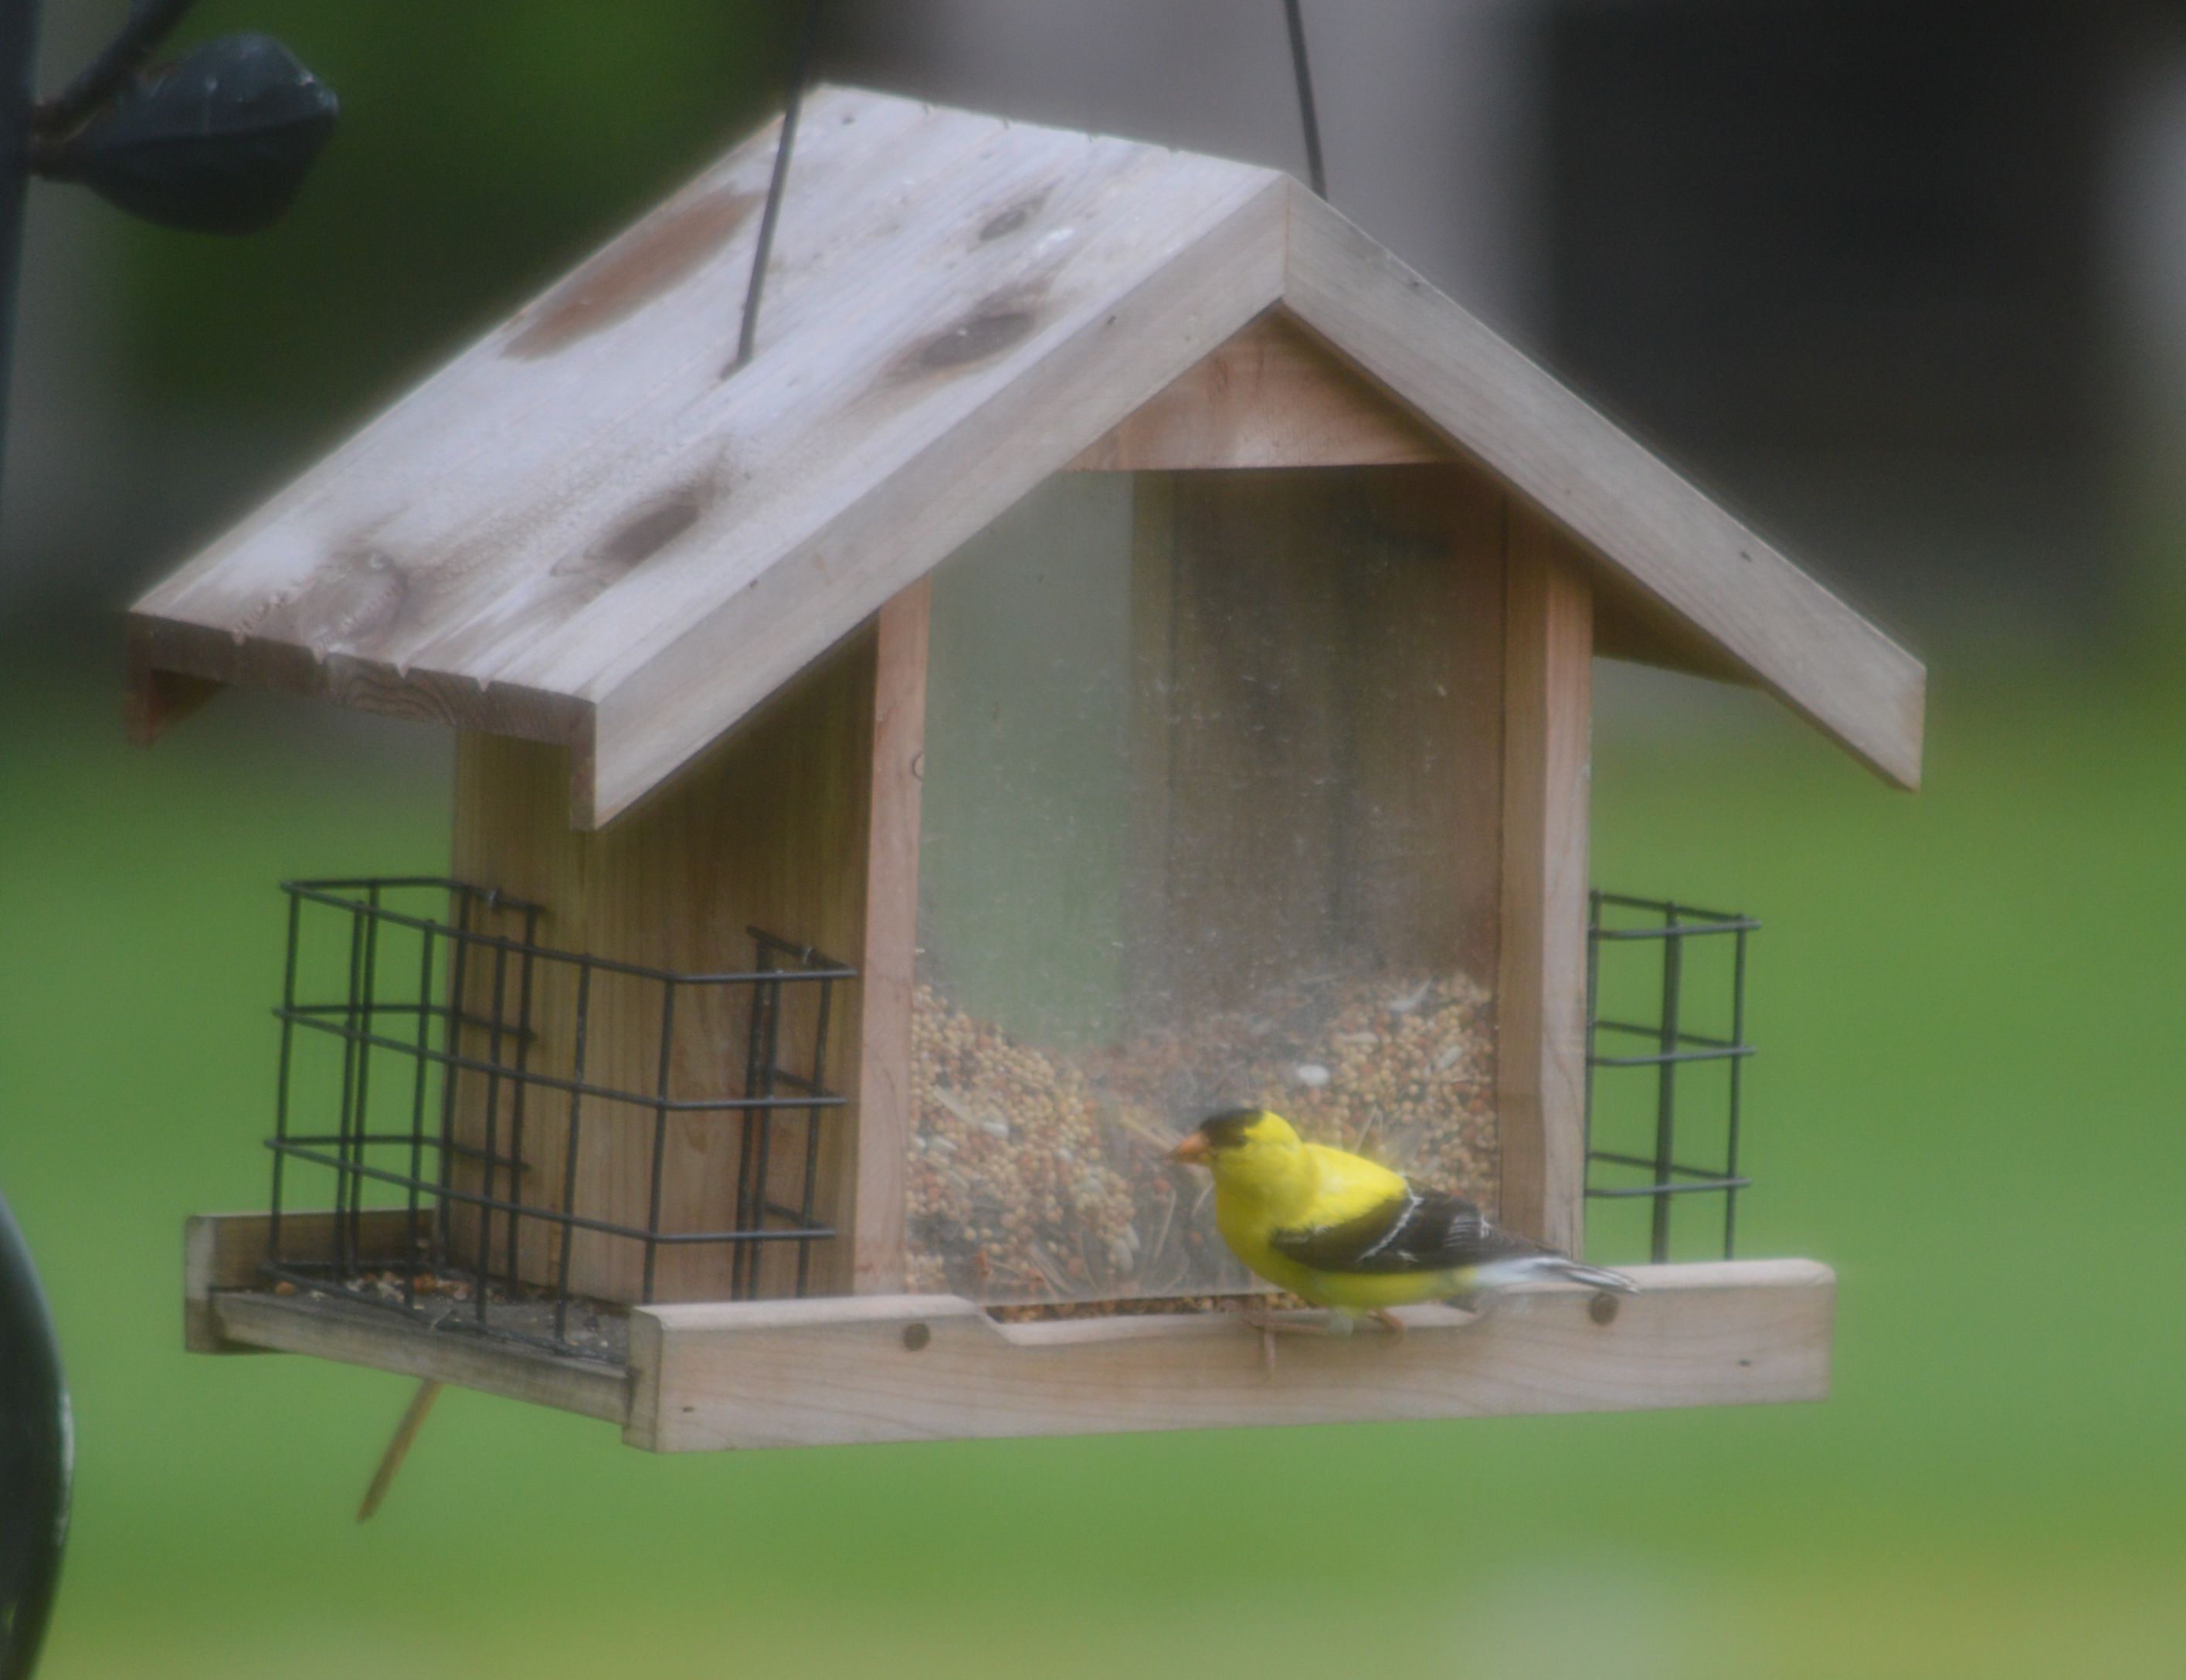 Beautiful American Goldfinch at Birdfeeder